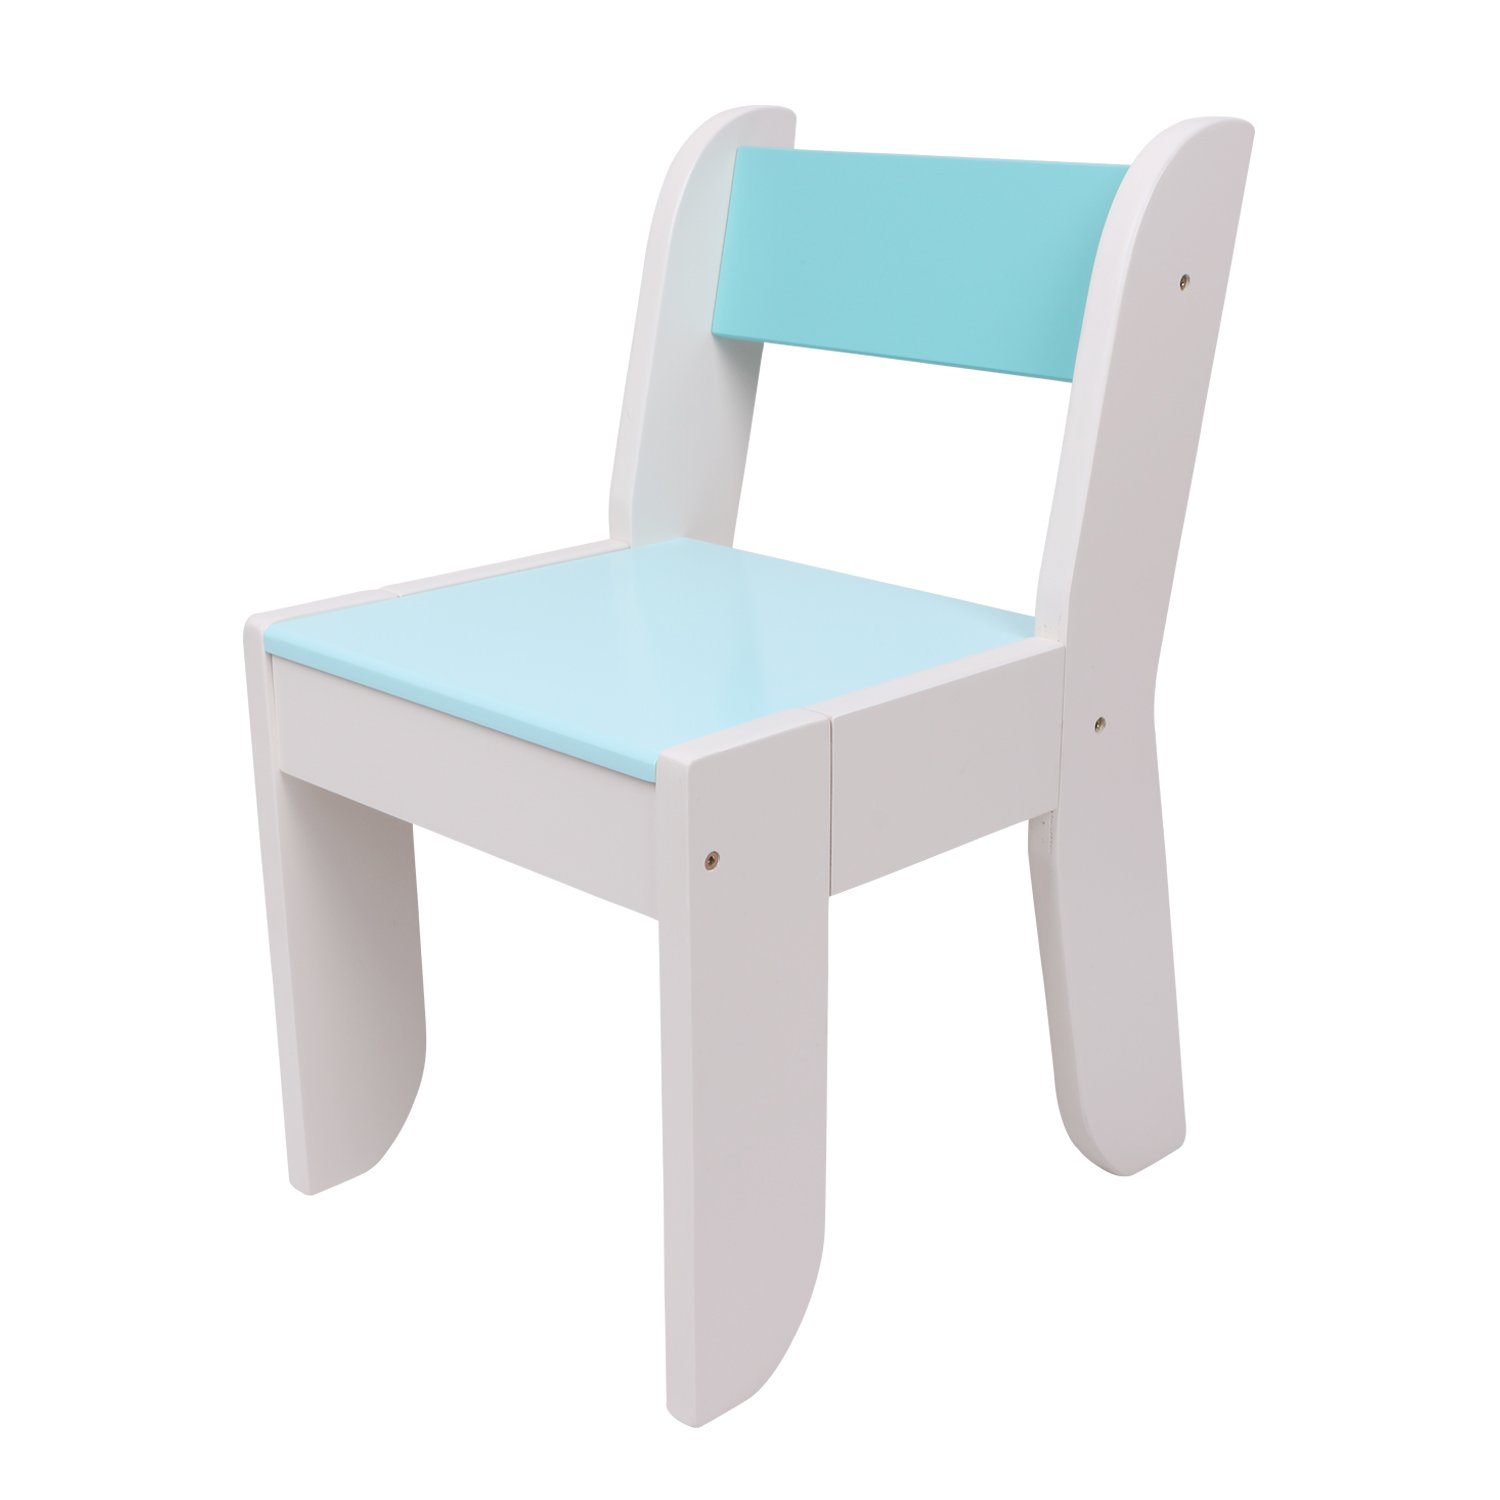 labebe Chair for Kids- Dark Blue Color for 1 to 5 Years Old Kids, Pair with Green Hedgehog, Solid Wood, Use for Painting/Reading/Group Play in Classroom & Home, Creative Birthday Gift